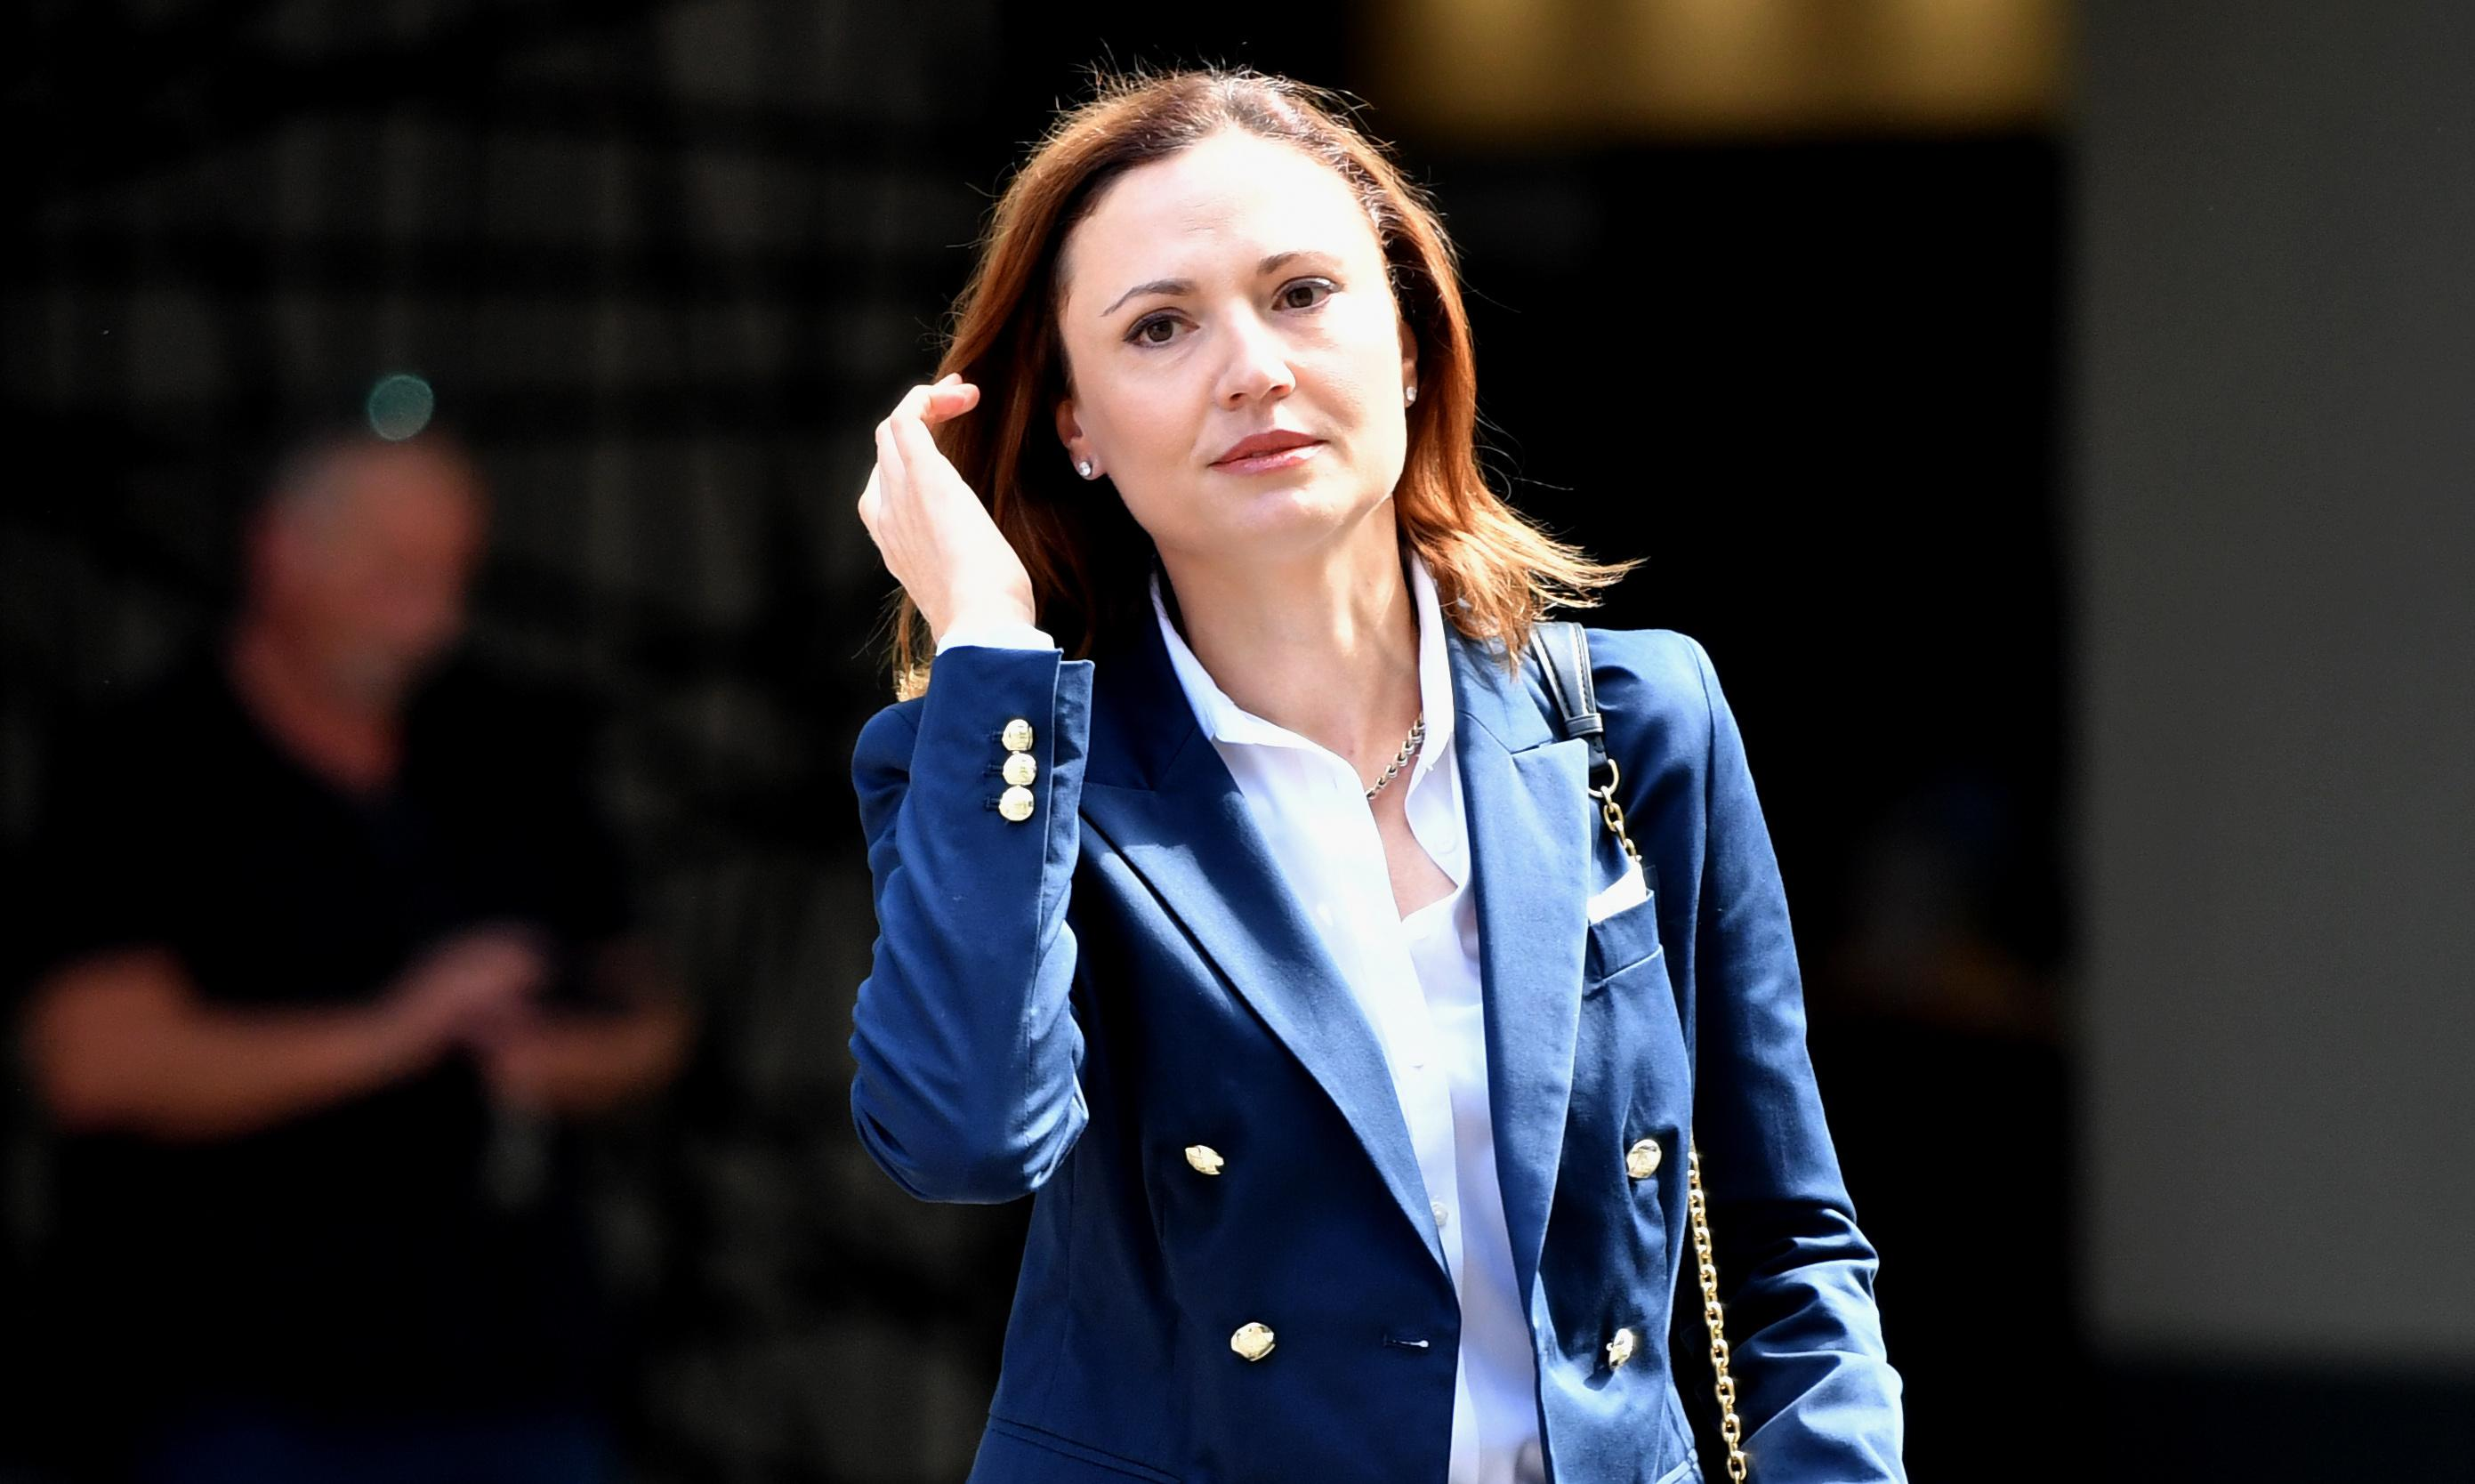 Anna Palmer 'can't remember' why millions shifted to Clive Palmer company